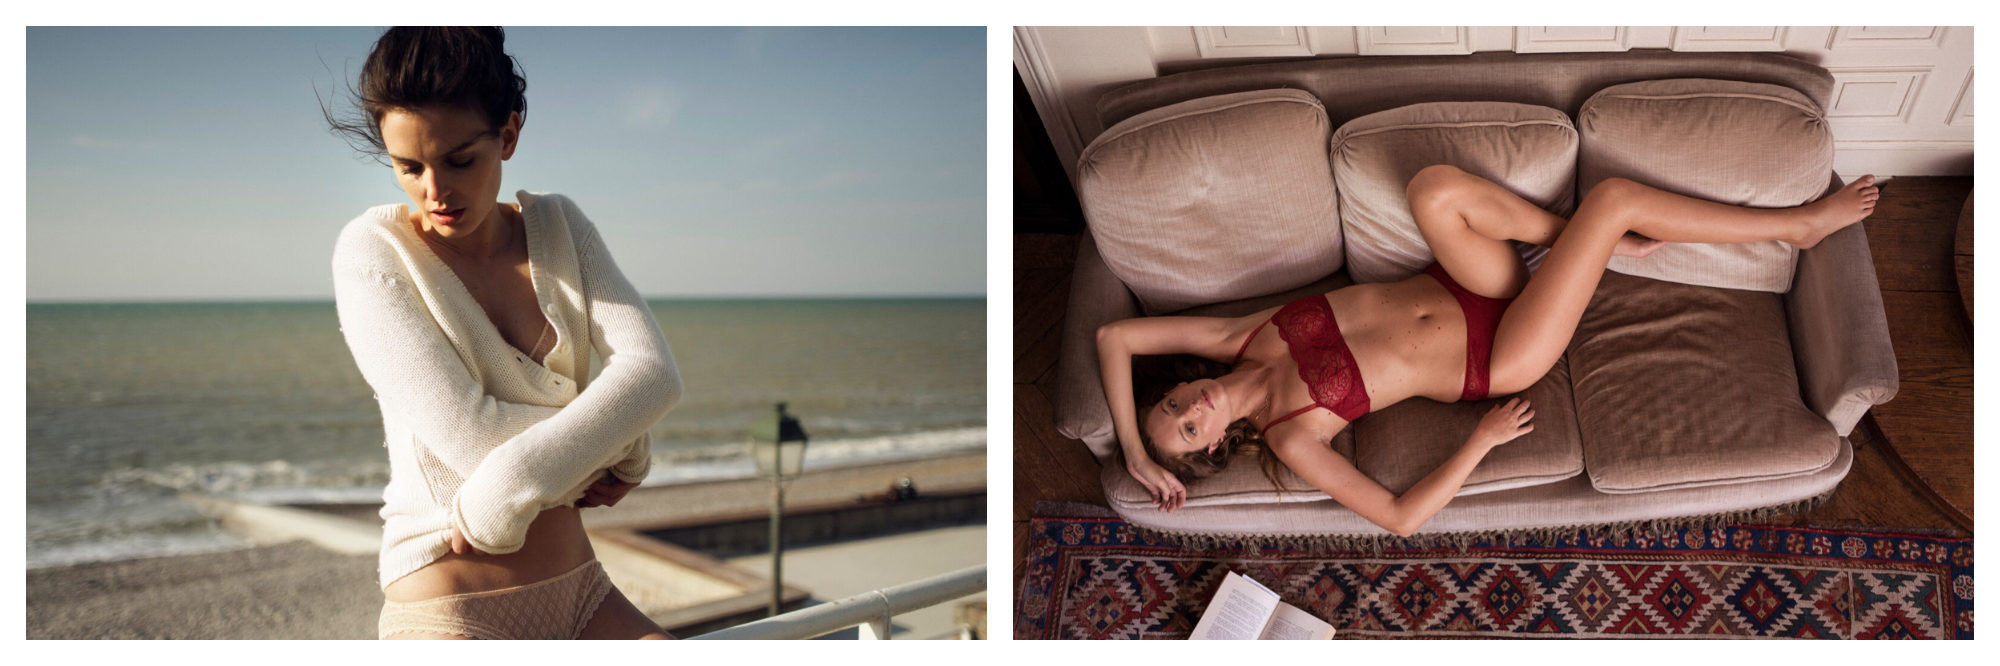 A woman about to take off a cozy  cross-over cream cardigan as she sits on the beach (left). A woman wearing latch red underwear, lying on a couch, by French fashion brand Ysé (right).